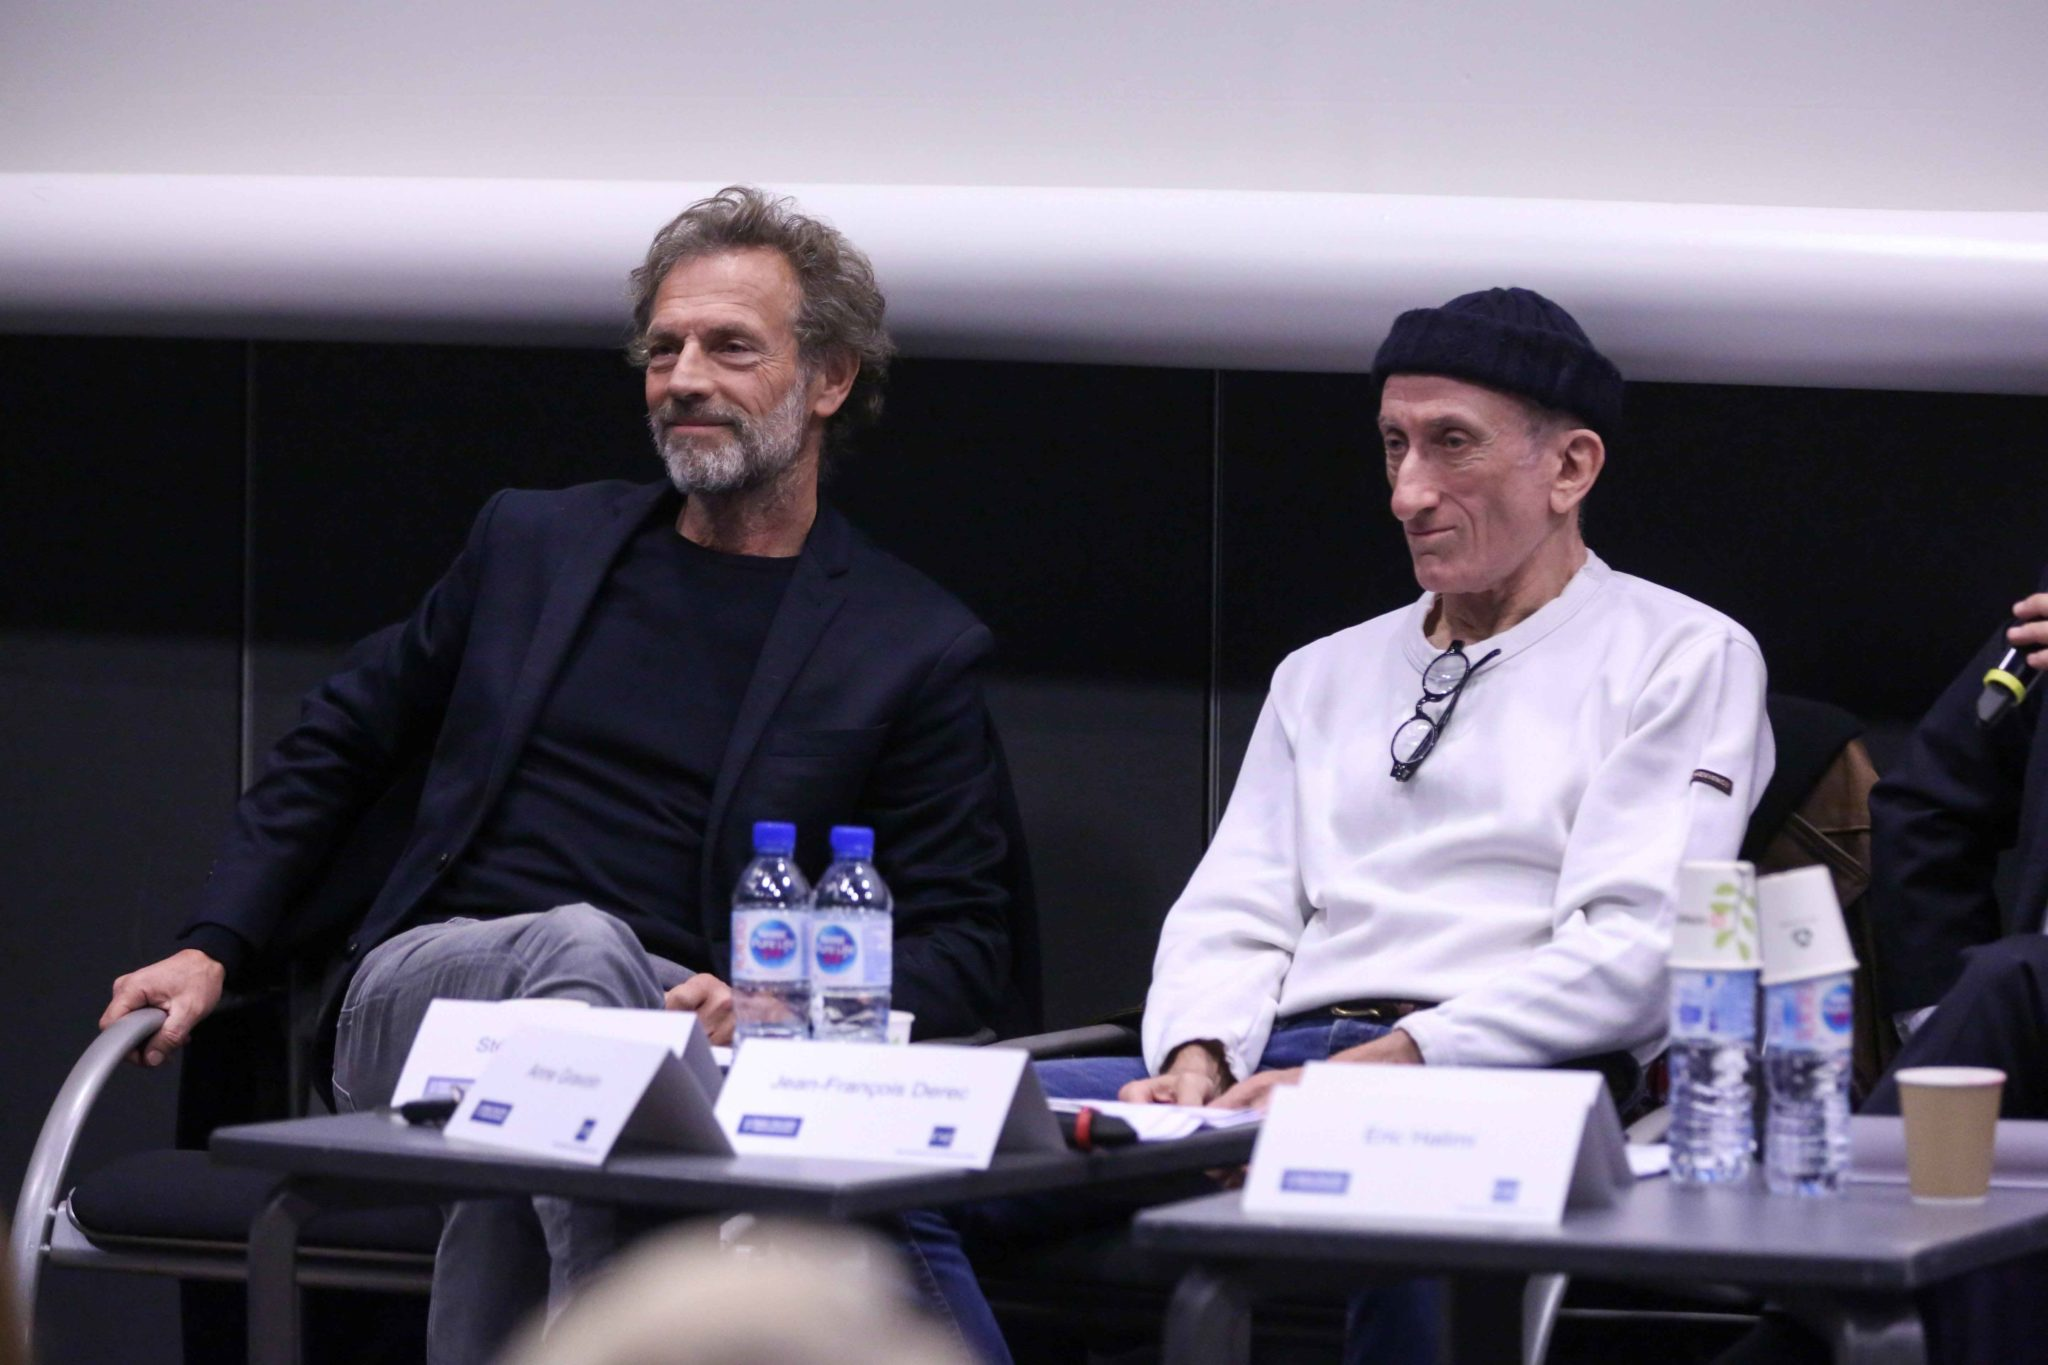 French comedian Jean-François Derec (R) and French actor Stéphane Freiss (L) take part part in the 10th national convention of the Representative Council of Jewish Institutions of France (CRIF - Conseil Representatif des Institutions juives de France) on